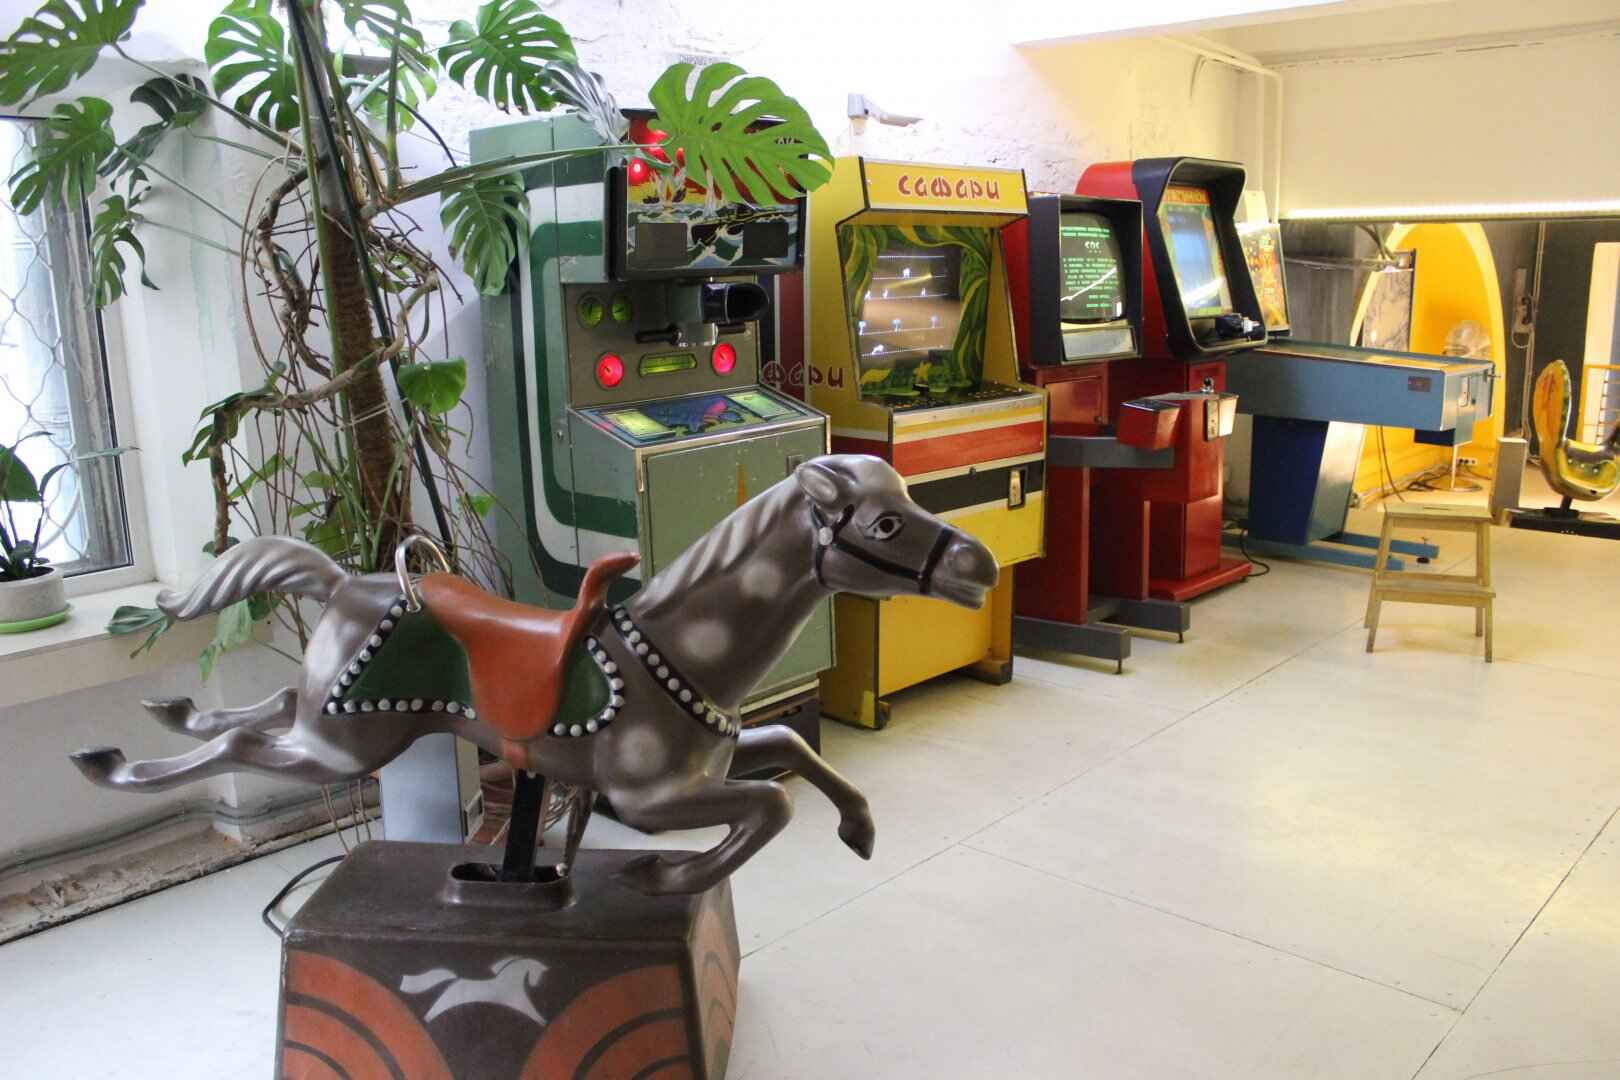 : The Museum of Soviet arcade games in Moscow. the Moscow City Pass, Фото 2